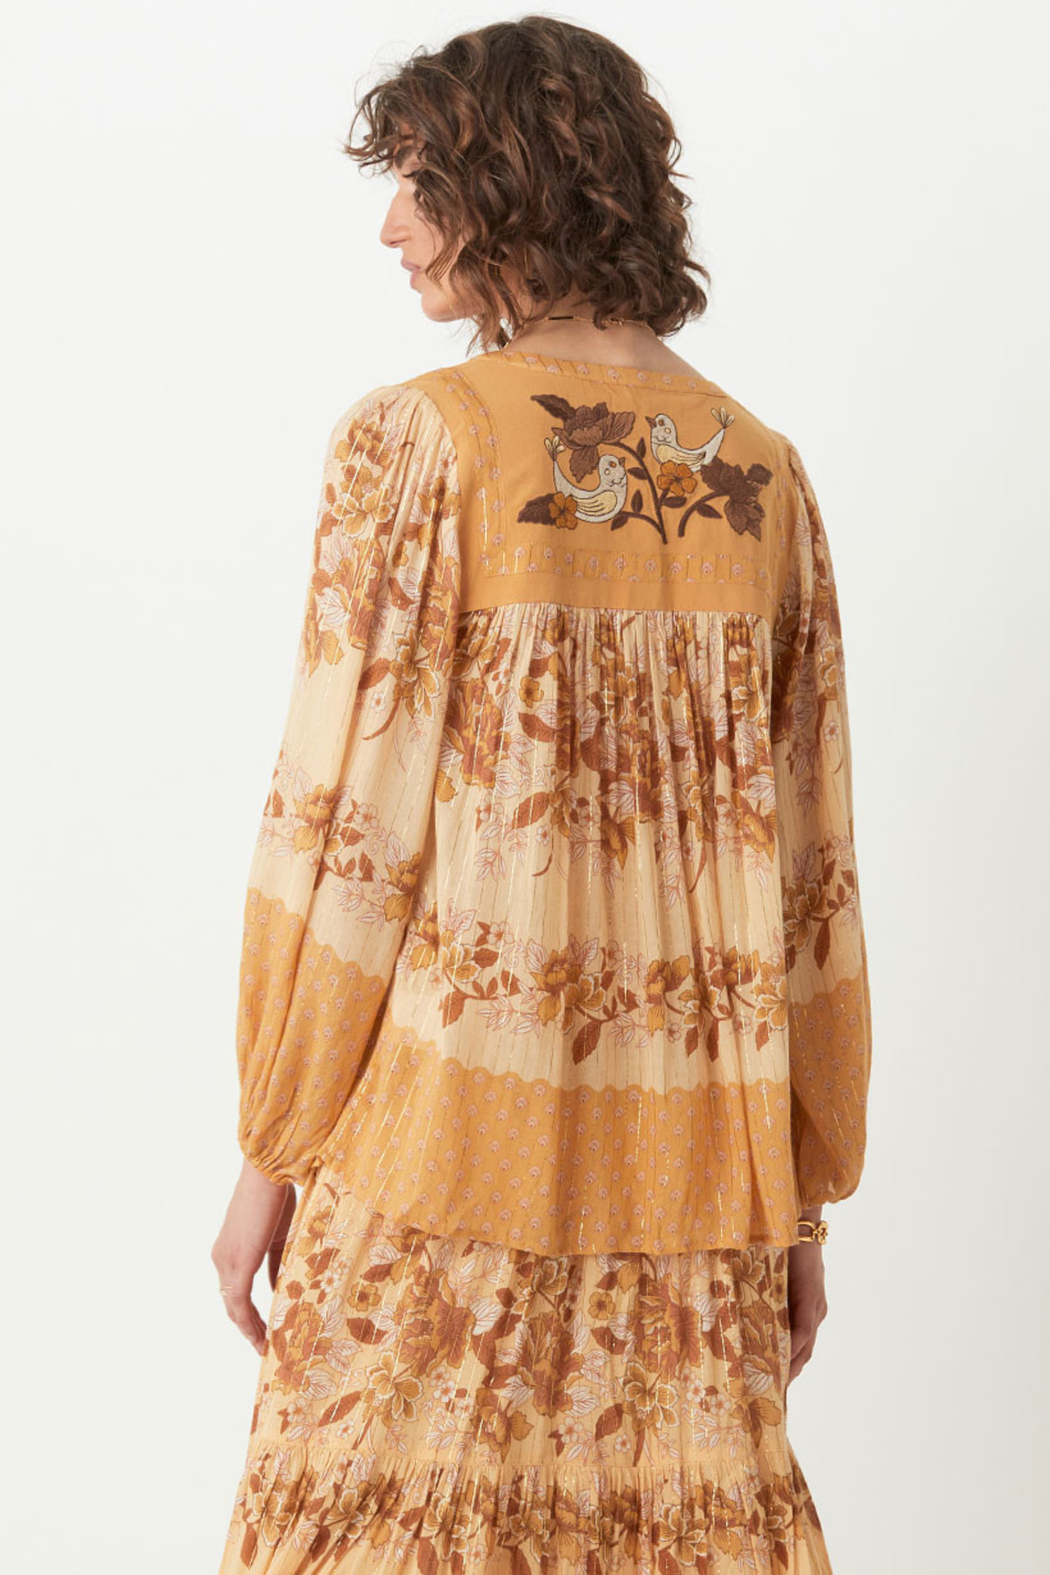 Spell & the Gypsy Collective Coco Lei Blouse in Caramel - Side Cropped Image